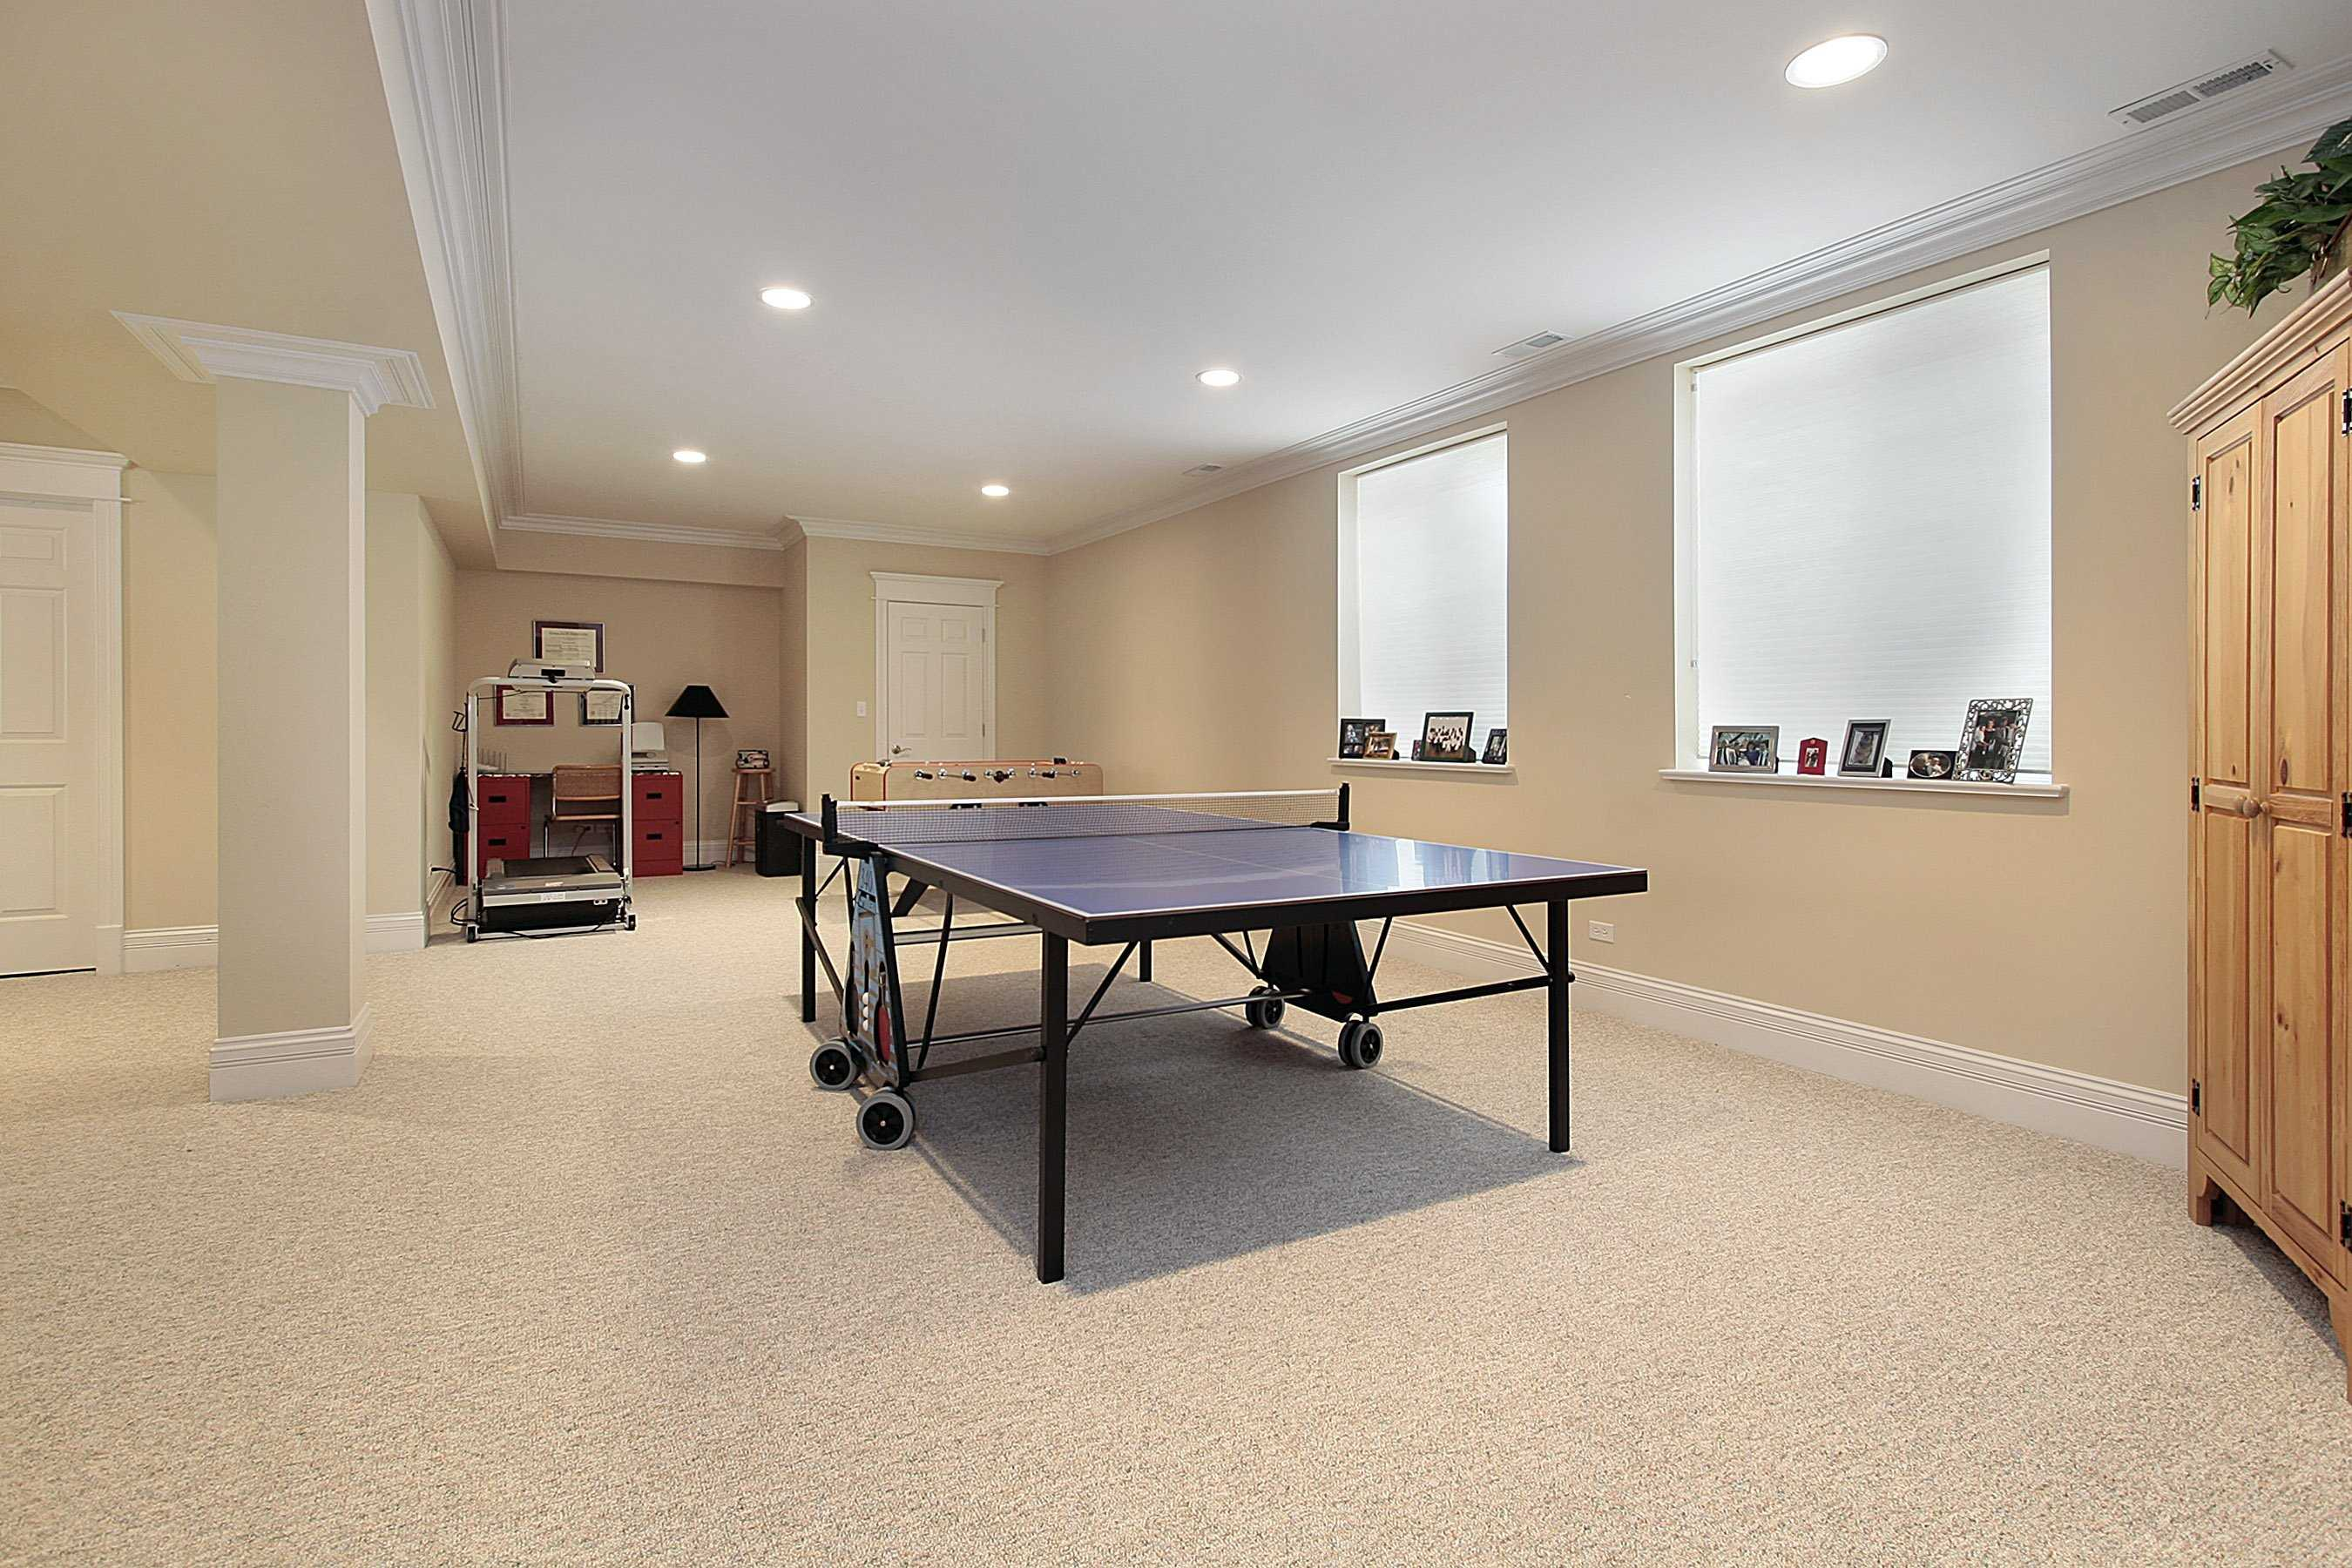 Basement Remodeling Ideas  Inspiration - Finished basement kids